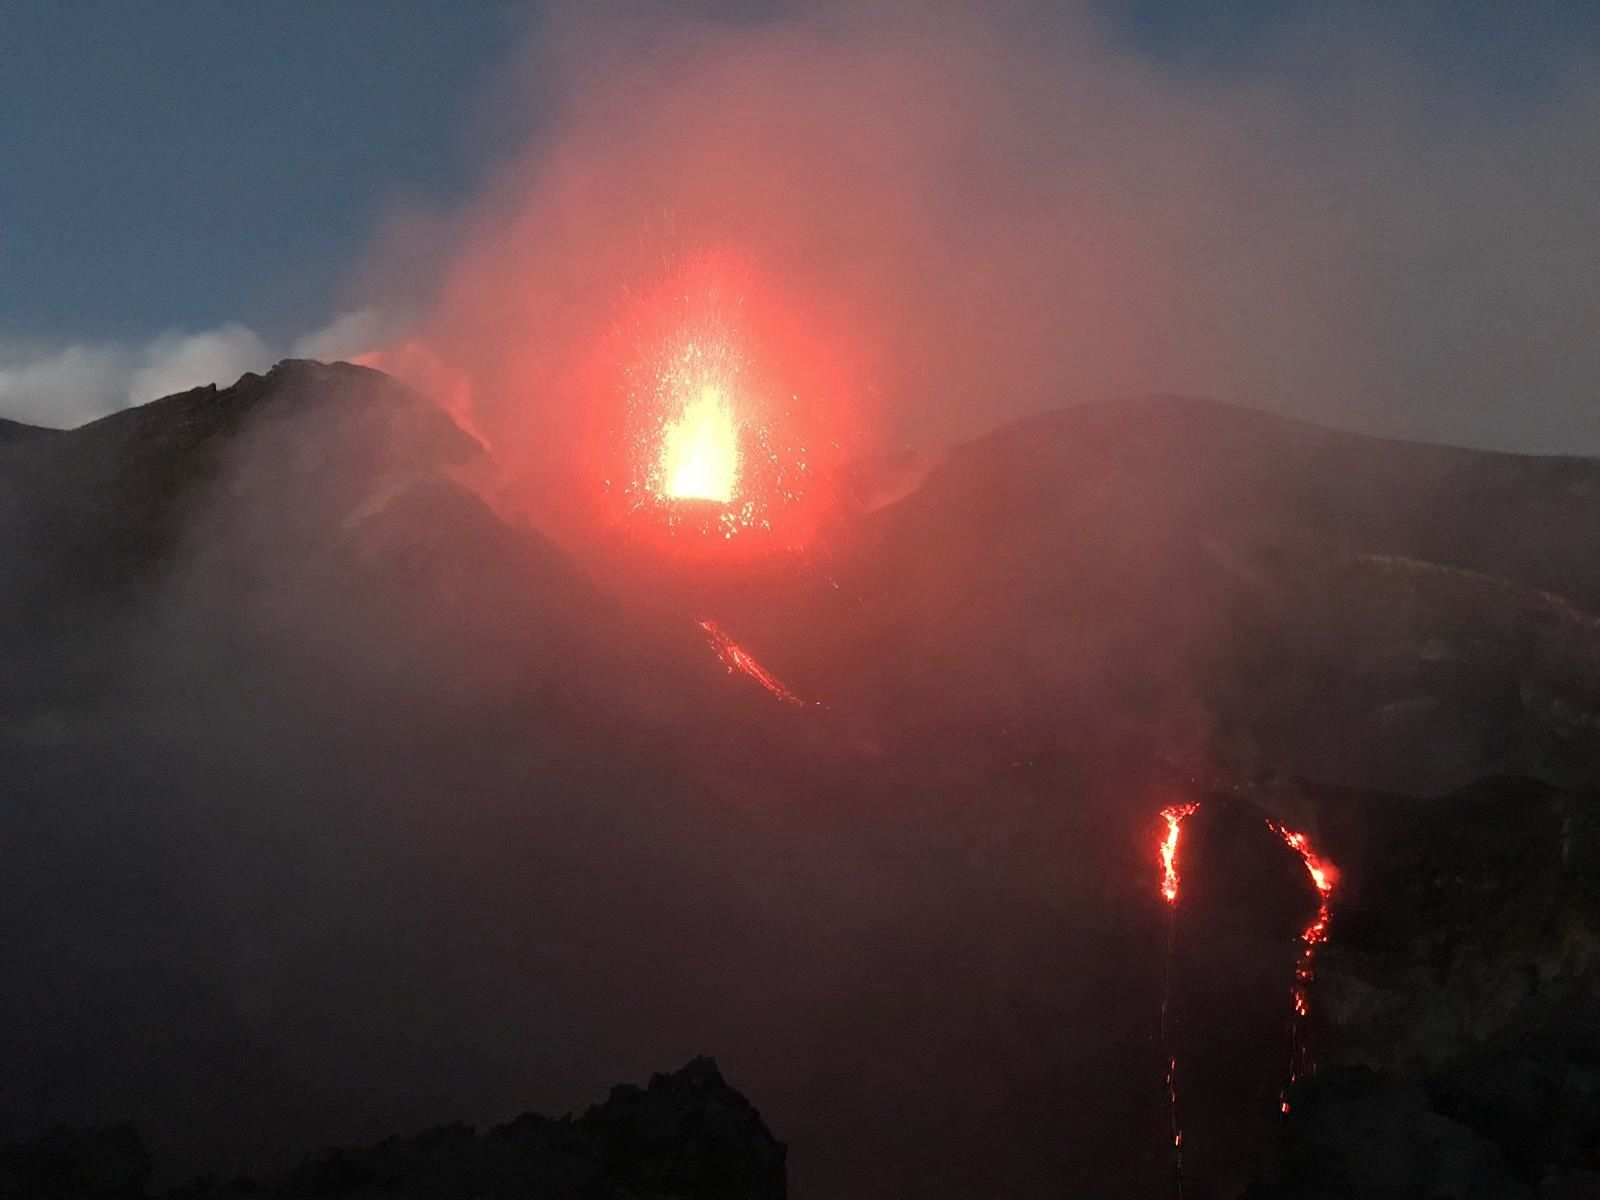 Etna - activity of the Voragine and casting towards the Bocca Nuova on 18.09.2019 -.Photos by volcanological guide Marco Tomasello, via Boris Behncke